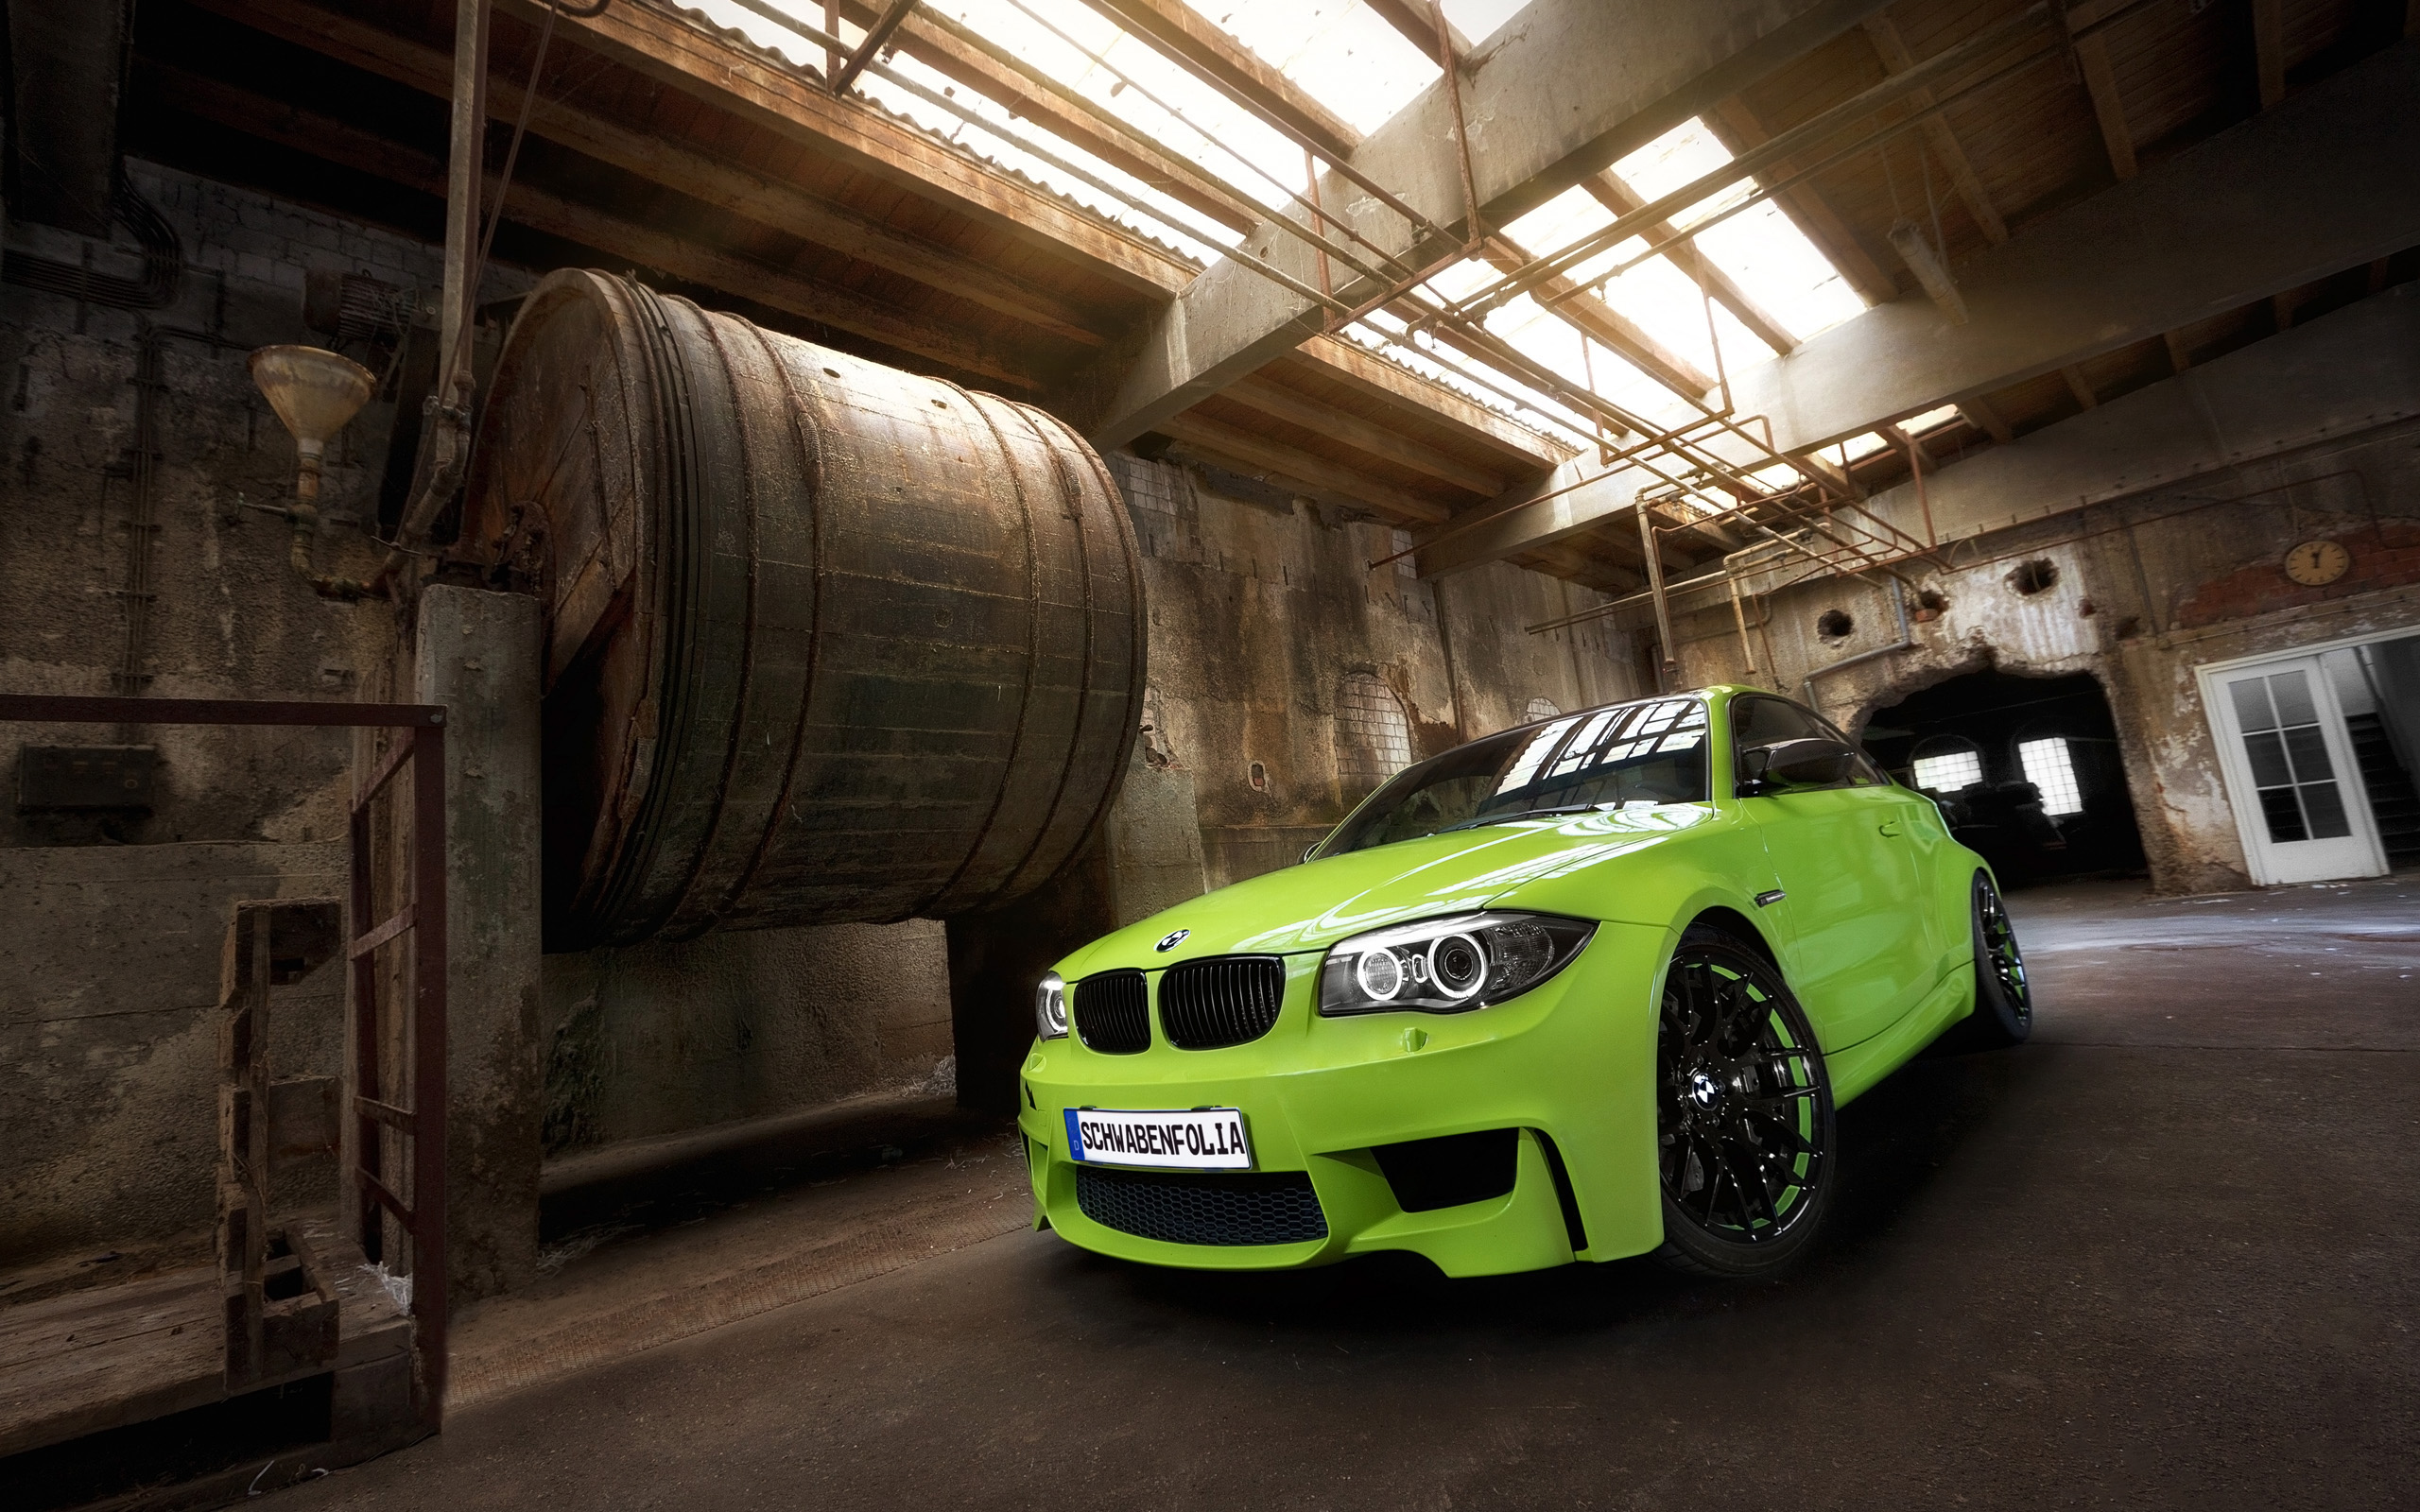 Bmw 1 Series M Coupe By Schwabenfolia 2 Wallpaper Hd Car Wallpapers Id 4101